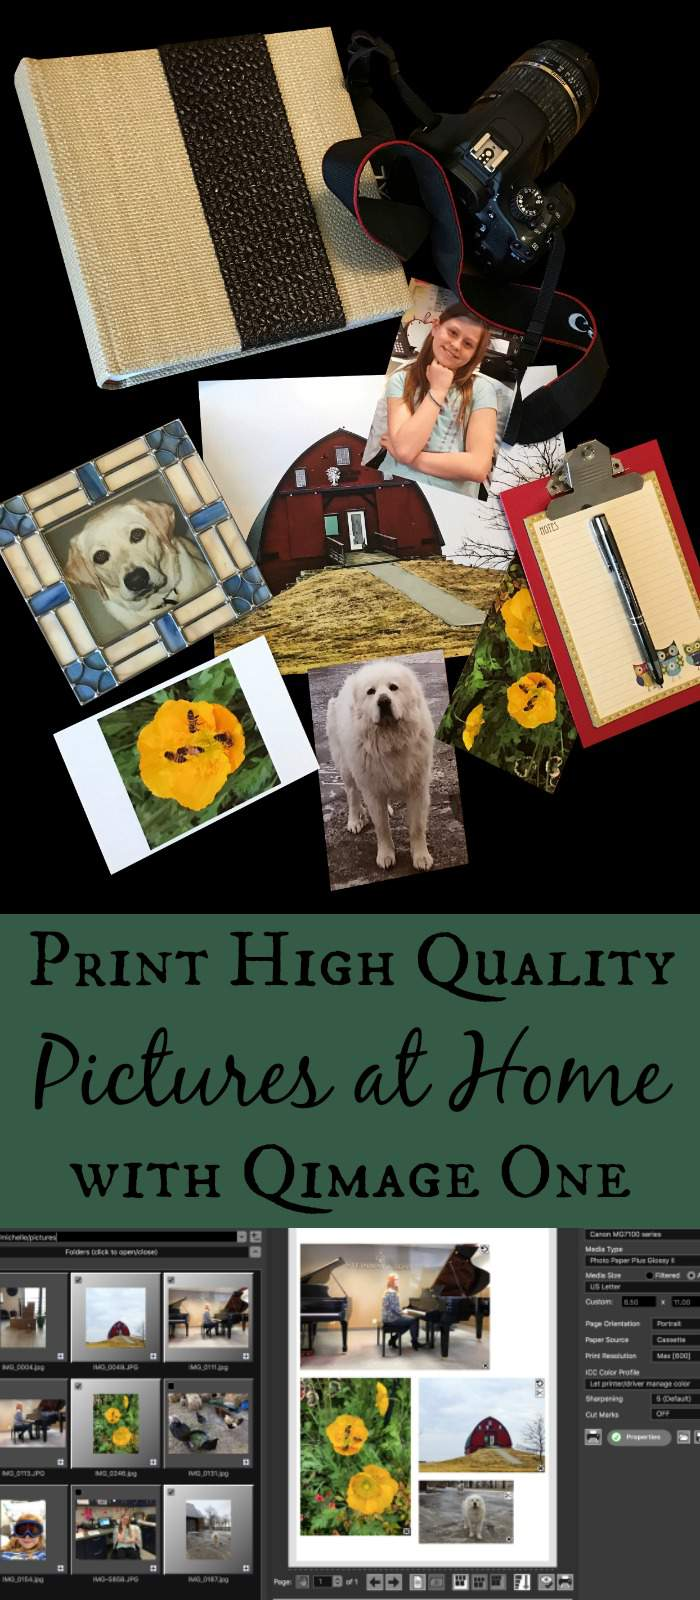 Print High Quality Pictures at Home with Qimage One